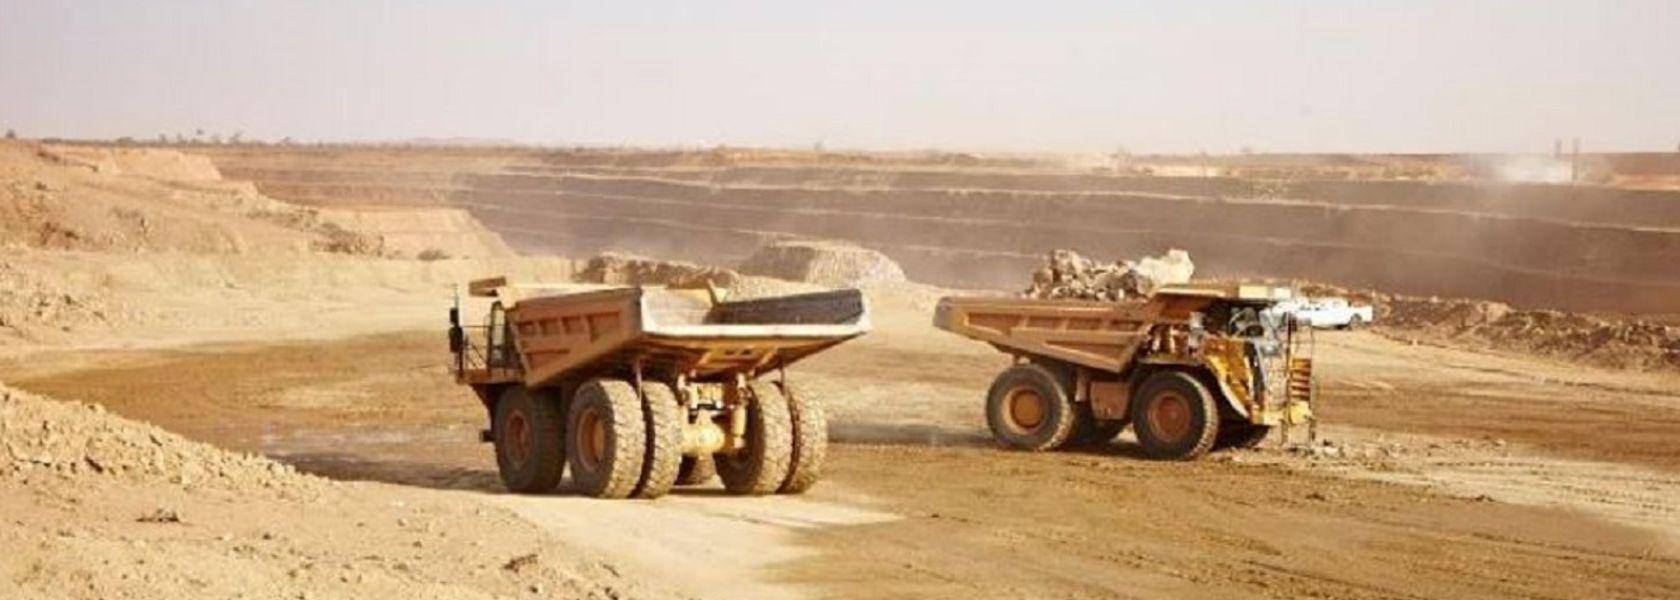 'The mining industry has never been cheaper': report